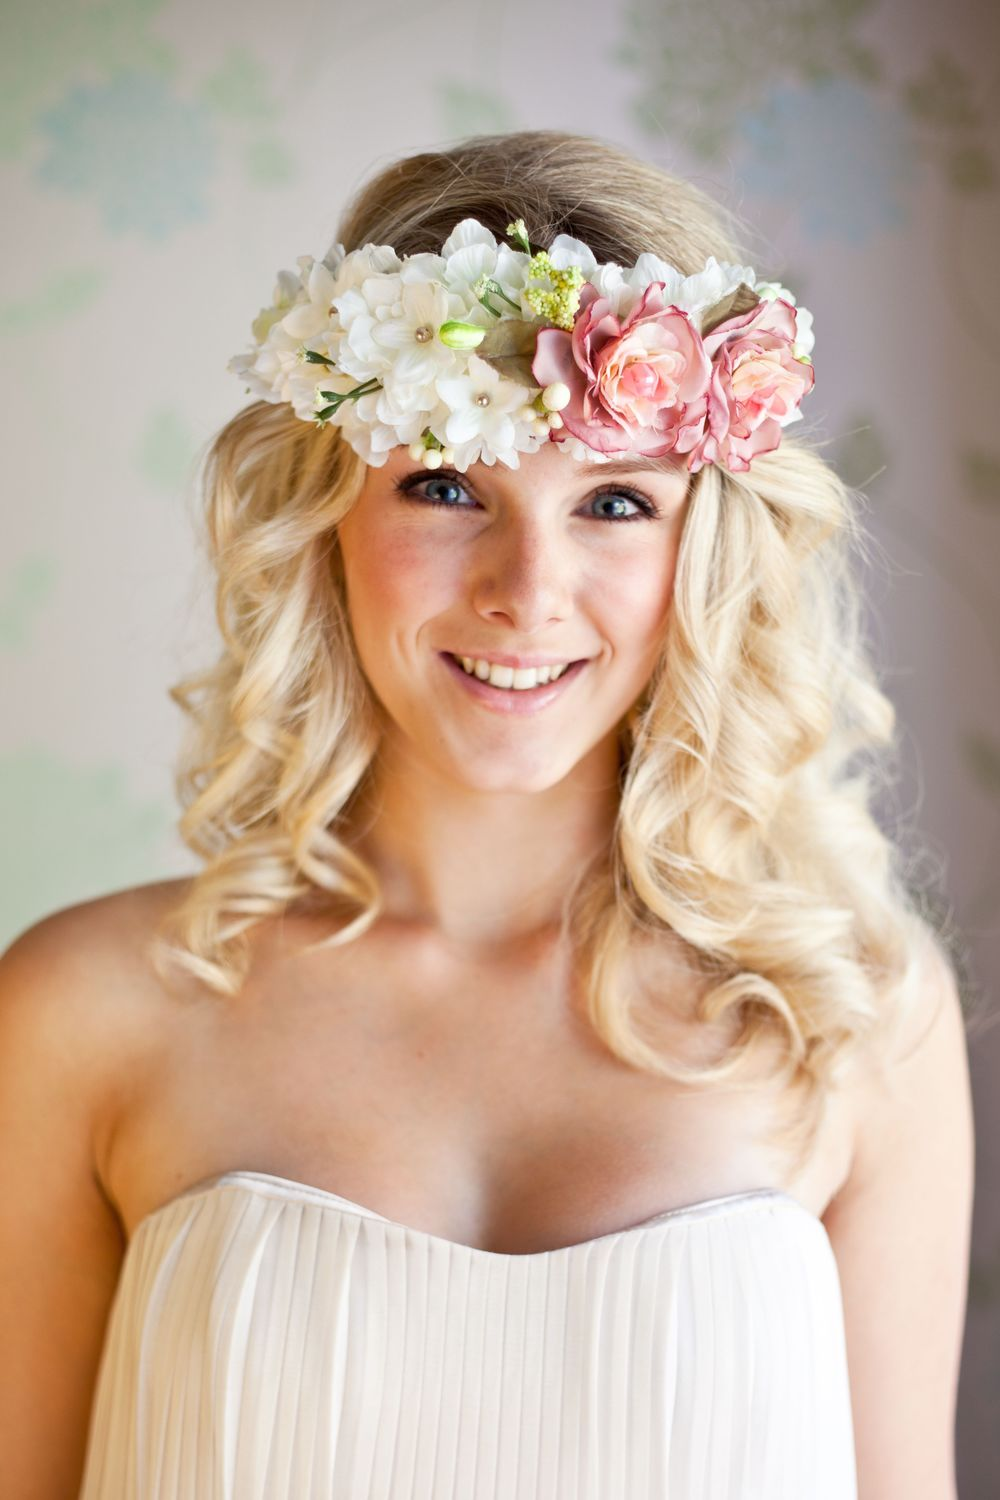 Lovehair%2520floral%2520headbands-021.jpg